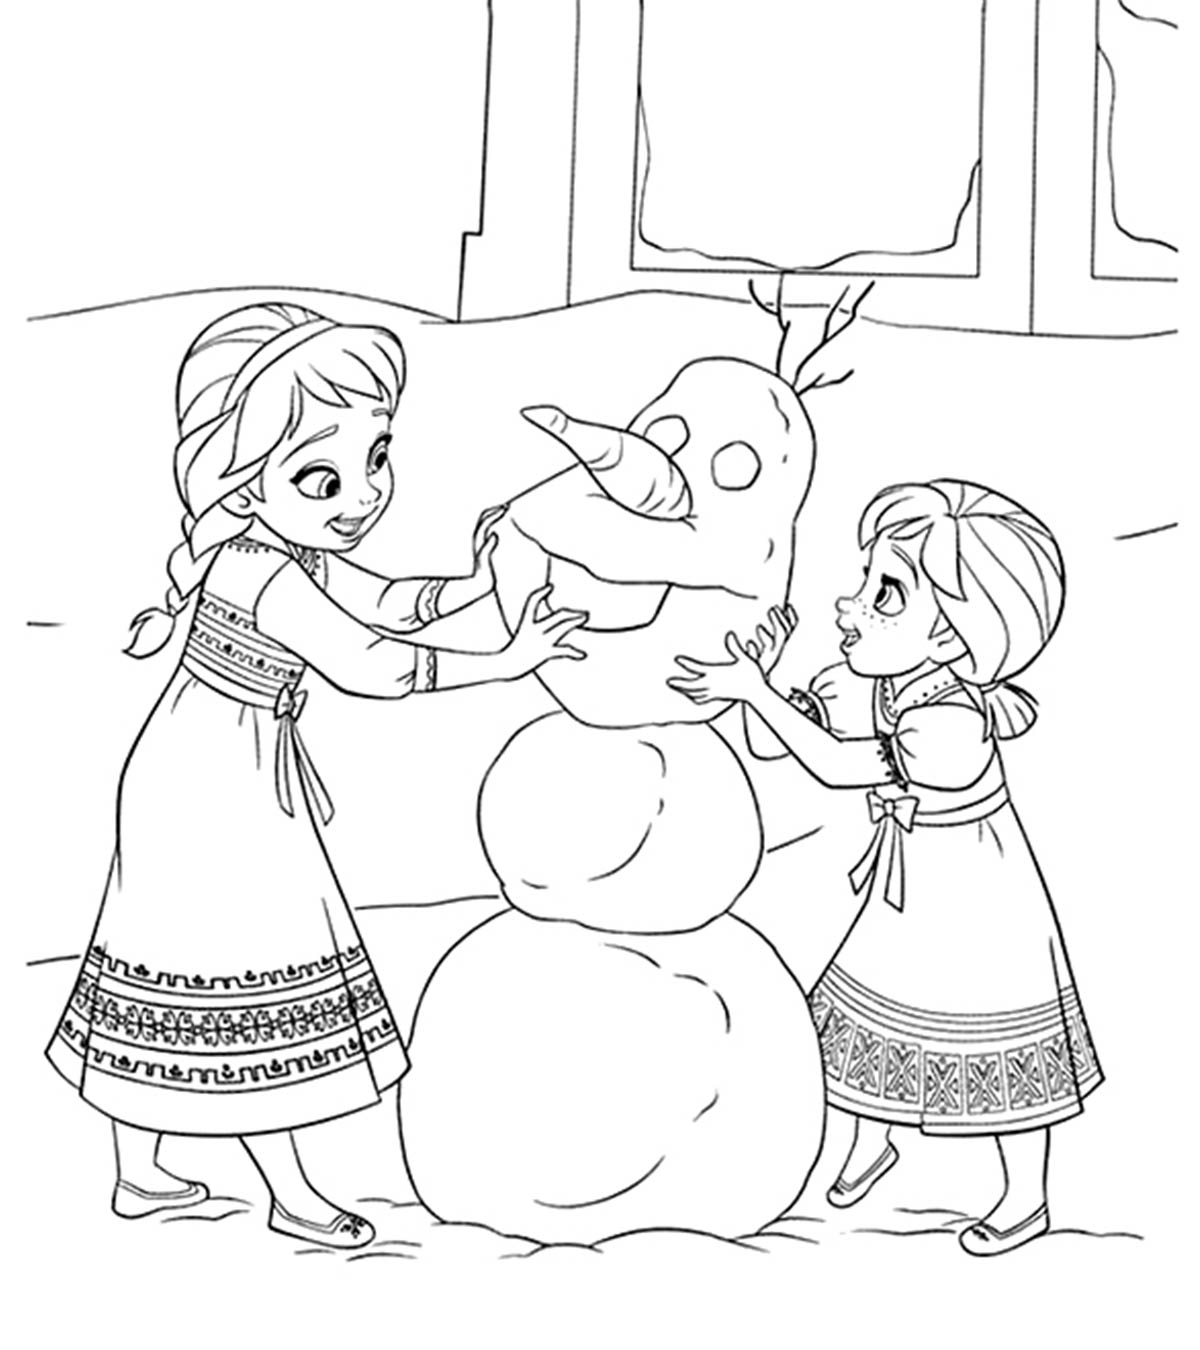 frozen 2 coloring pages frozen ii free colouring pages pages frozen 2 coloring